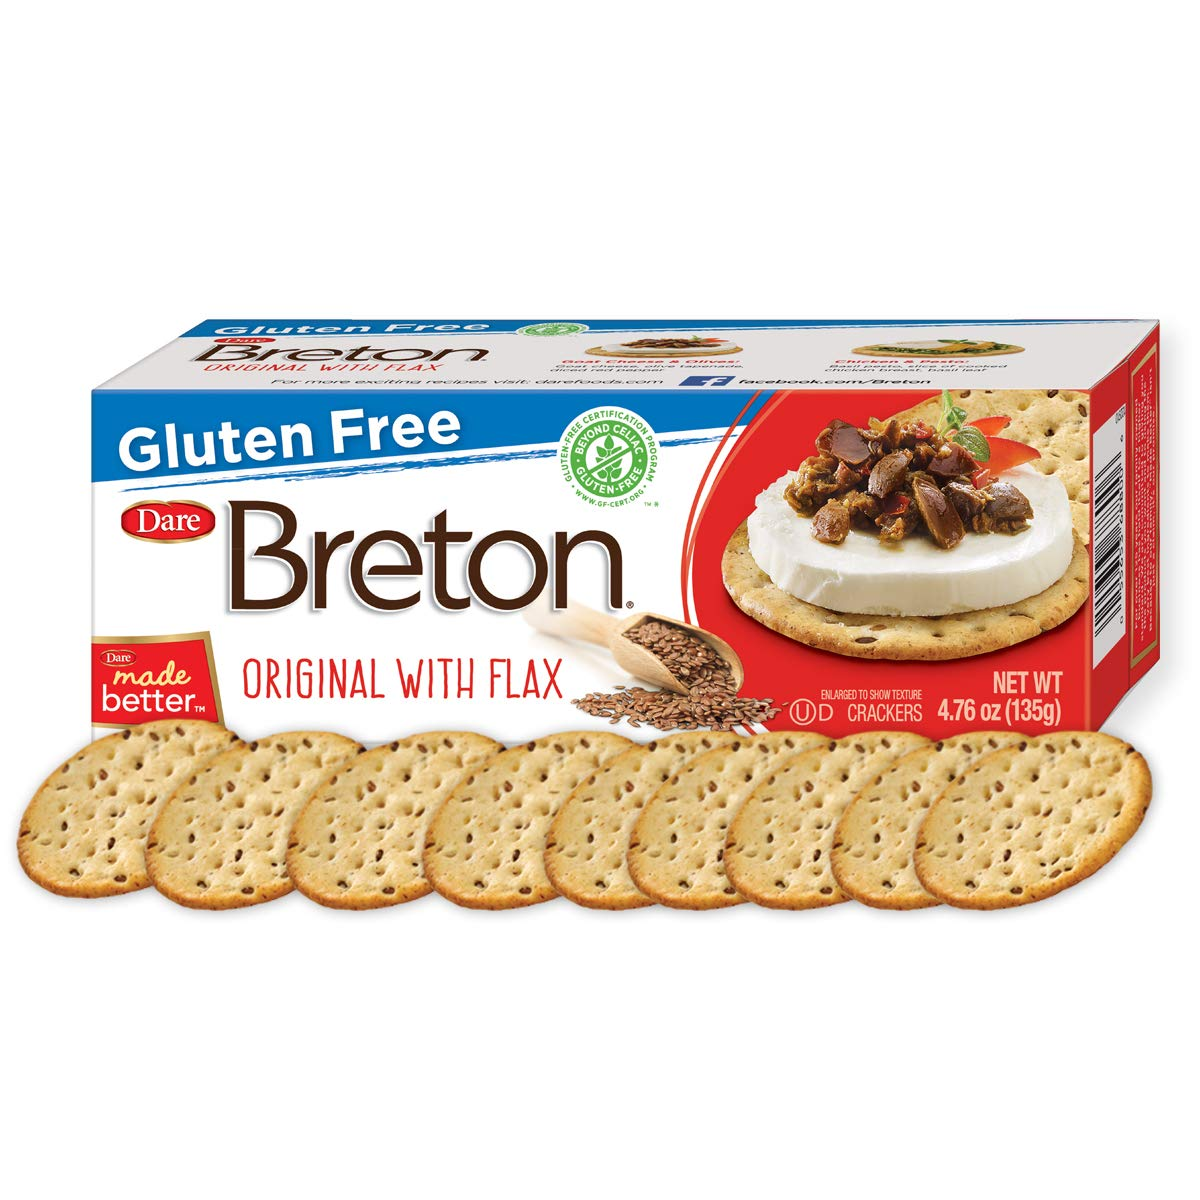 Dare Breton Gluten Free Entertaining Crackers, Original with Flax - Gluten Free Party Snacks with no Artificial Colors or Flavors - 4.76 Ounces (Pack of 6) by Dare